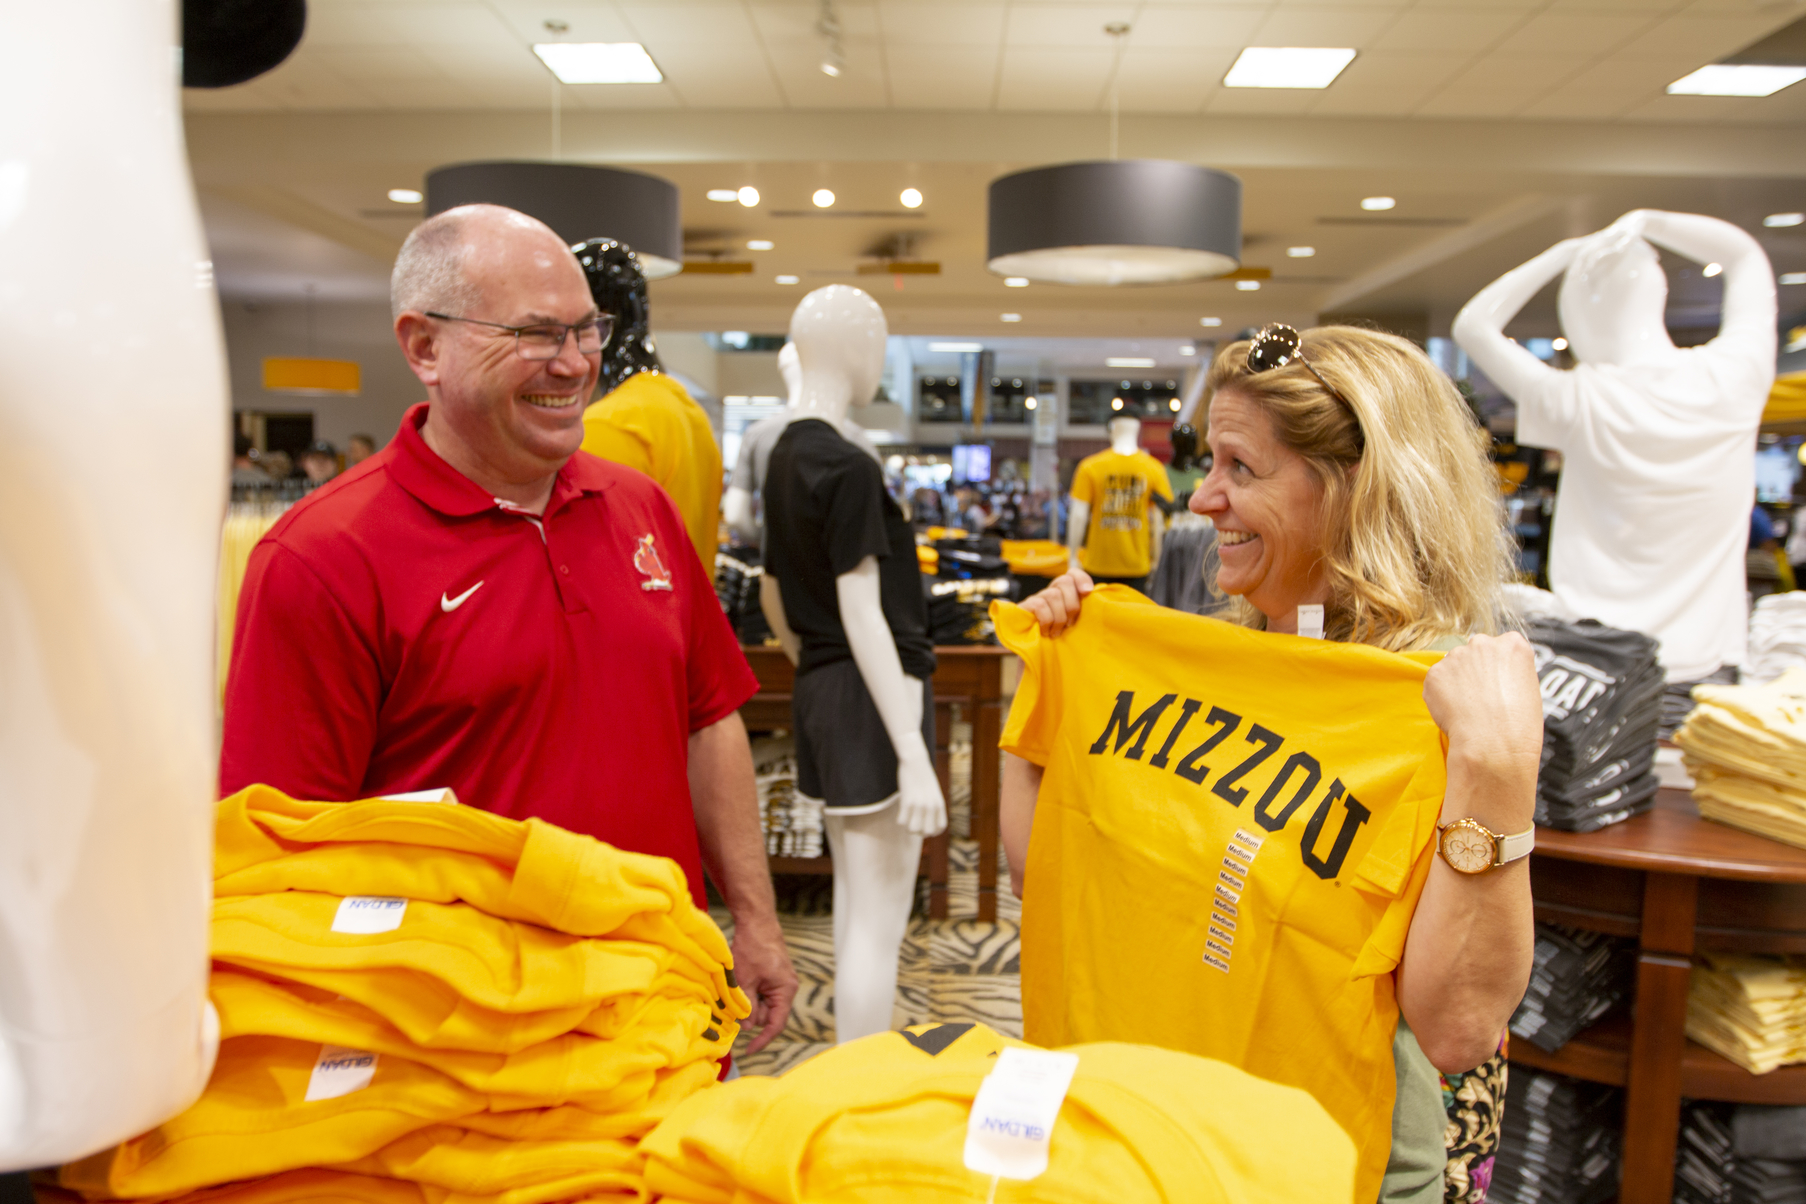 Dan and Karen Doggendorf, parents who came to Columbia from Dallas for Family Weekend, shop at the Mizzou Store Sep. 21, 2018. Photo by Katrina Boles